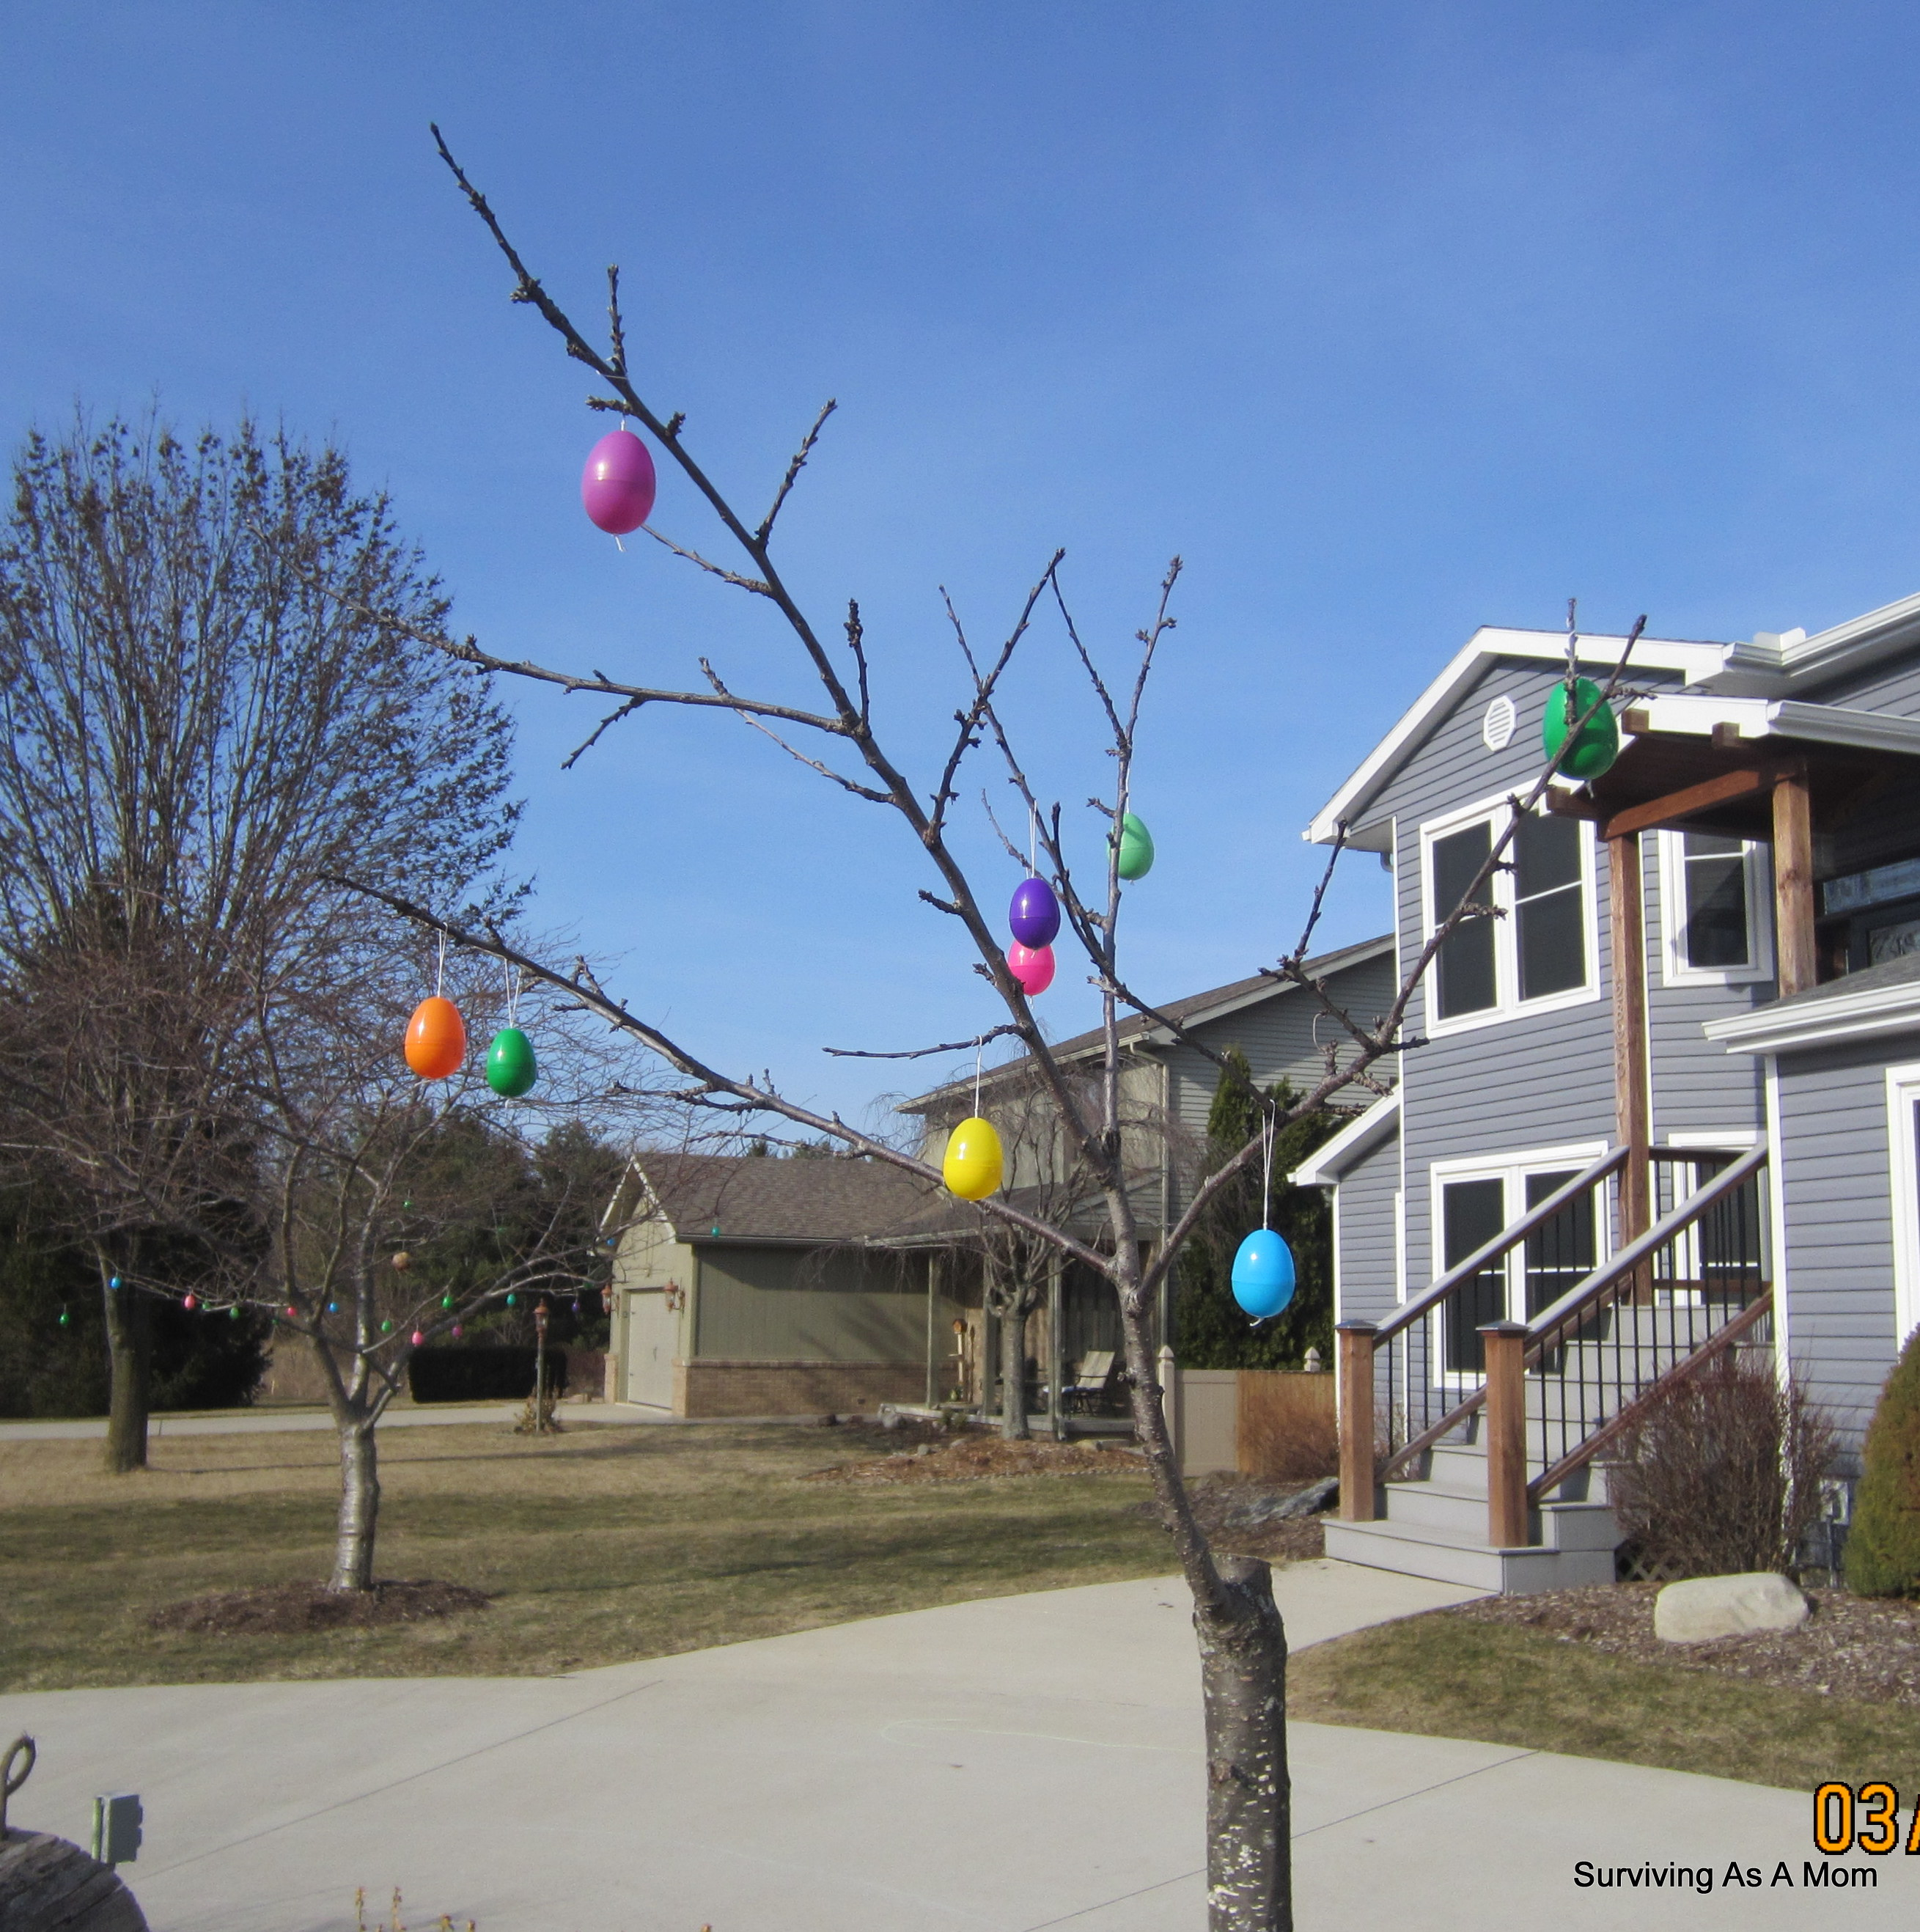 S Loves To Decorate For Holidays I Have Say Think He Gets It From Me Easter Doesn T Really Work Hang Lights Outside